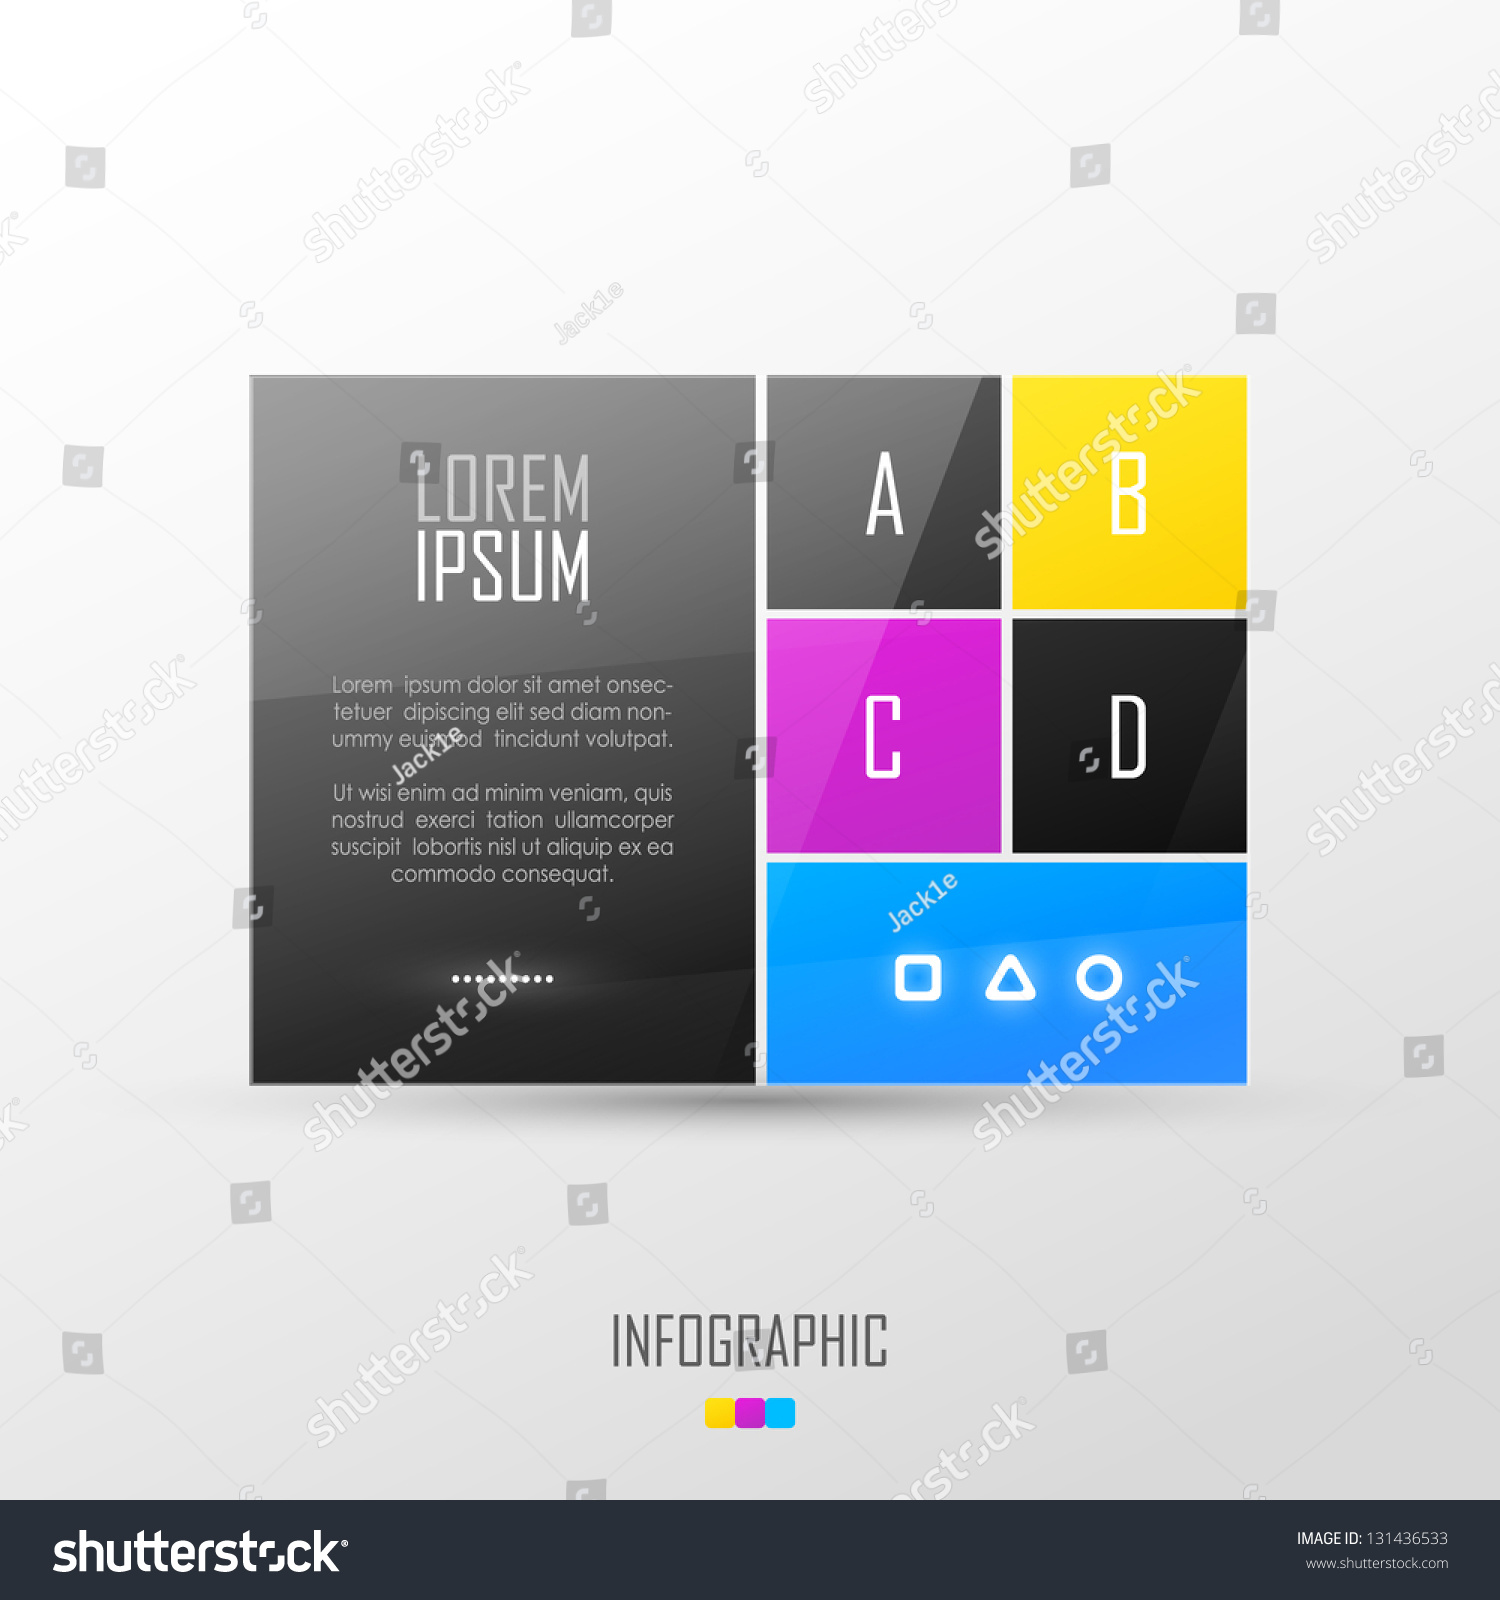 Website Template Design Stock Vector HD (Royalty Free) 131436533 ...